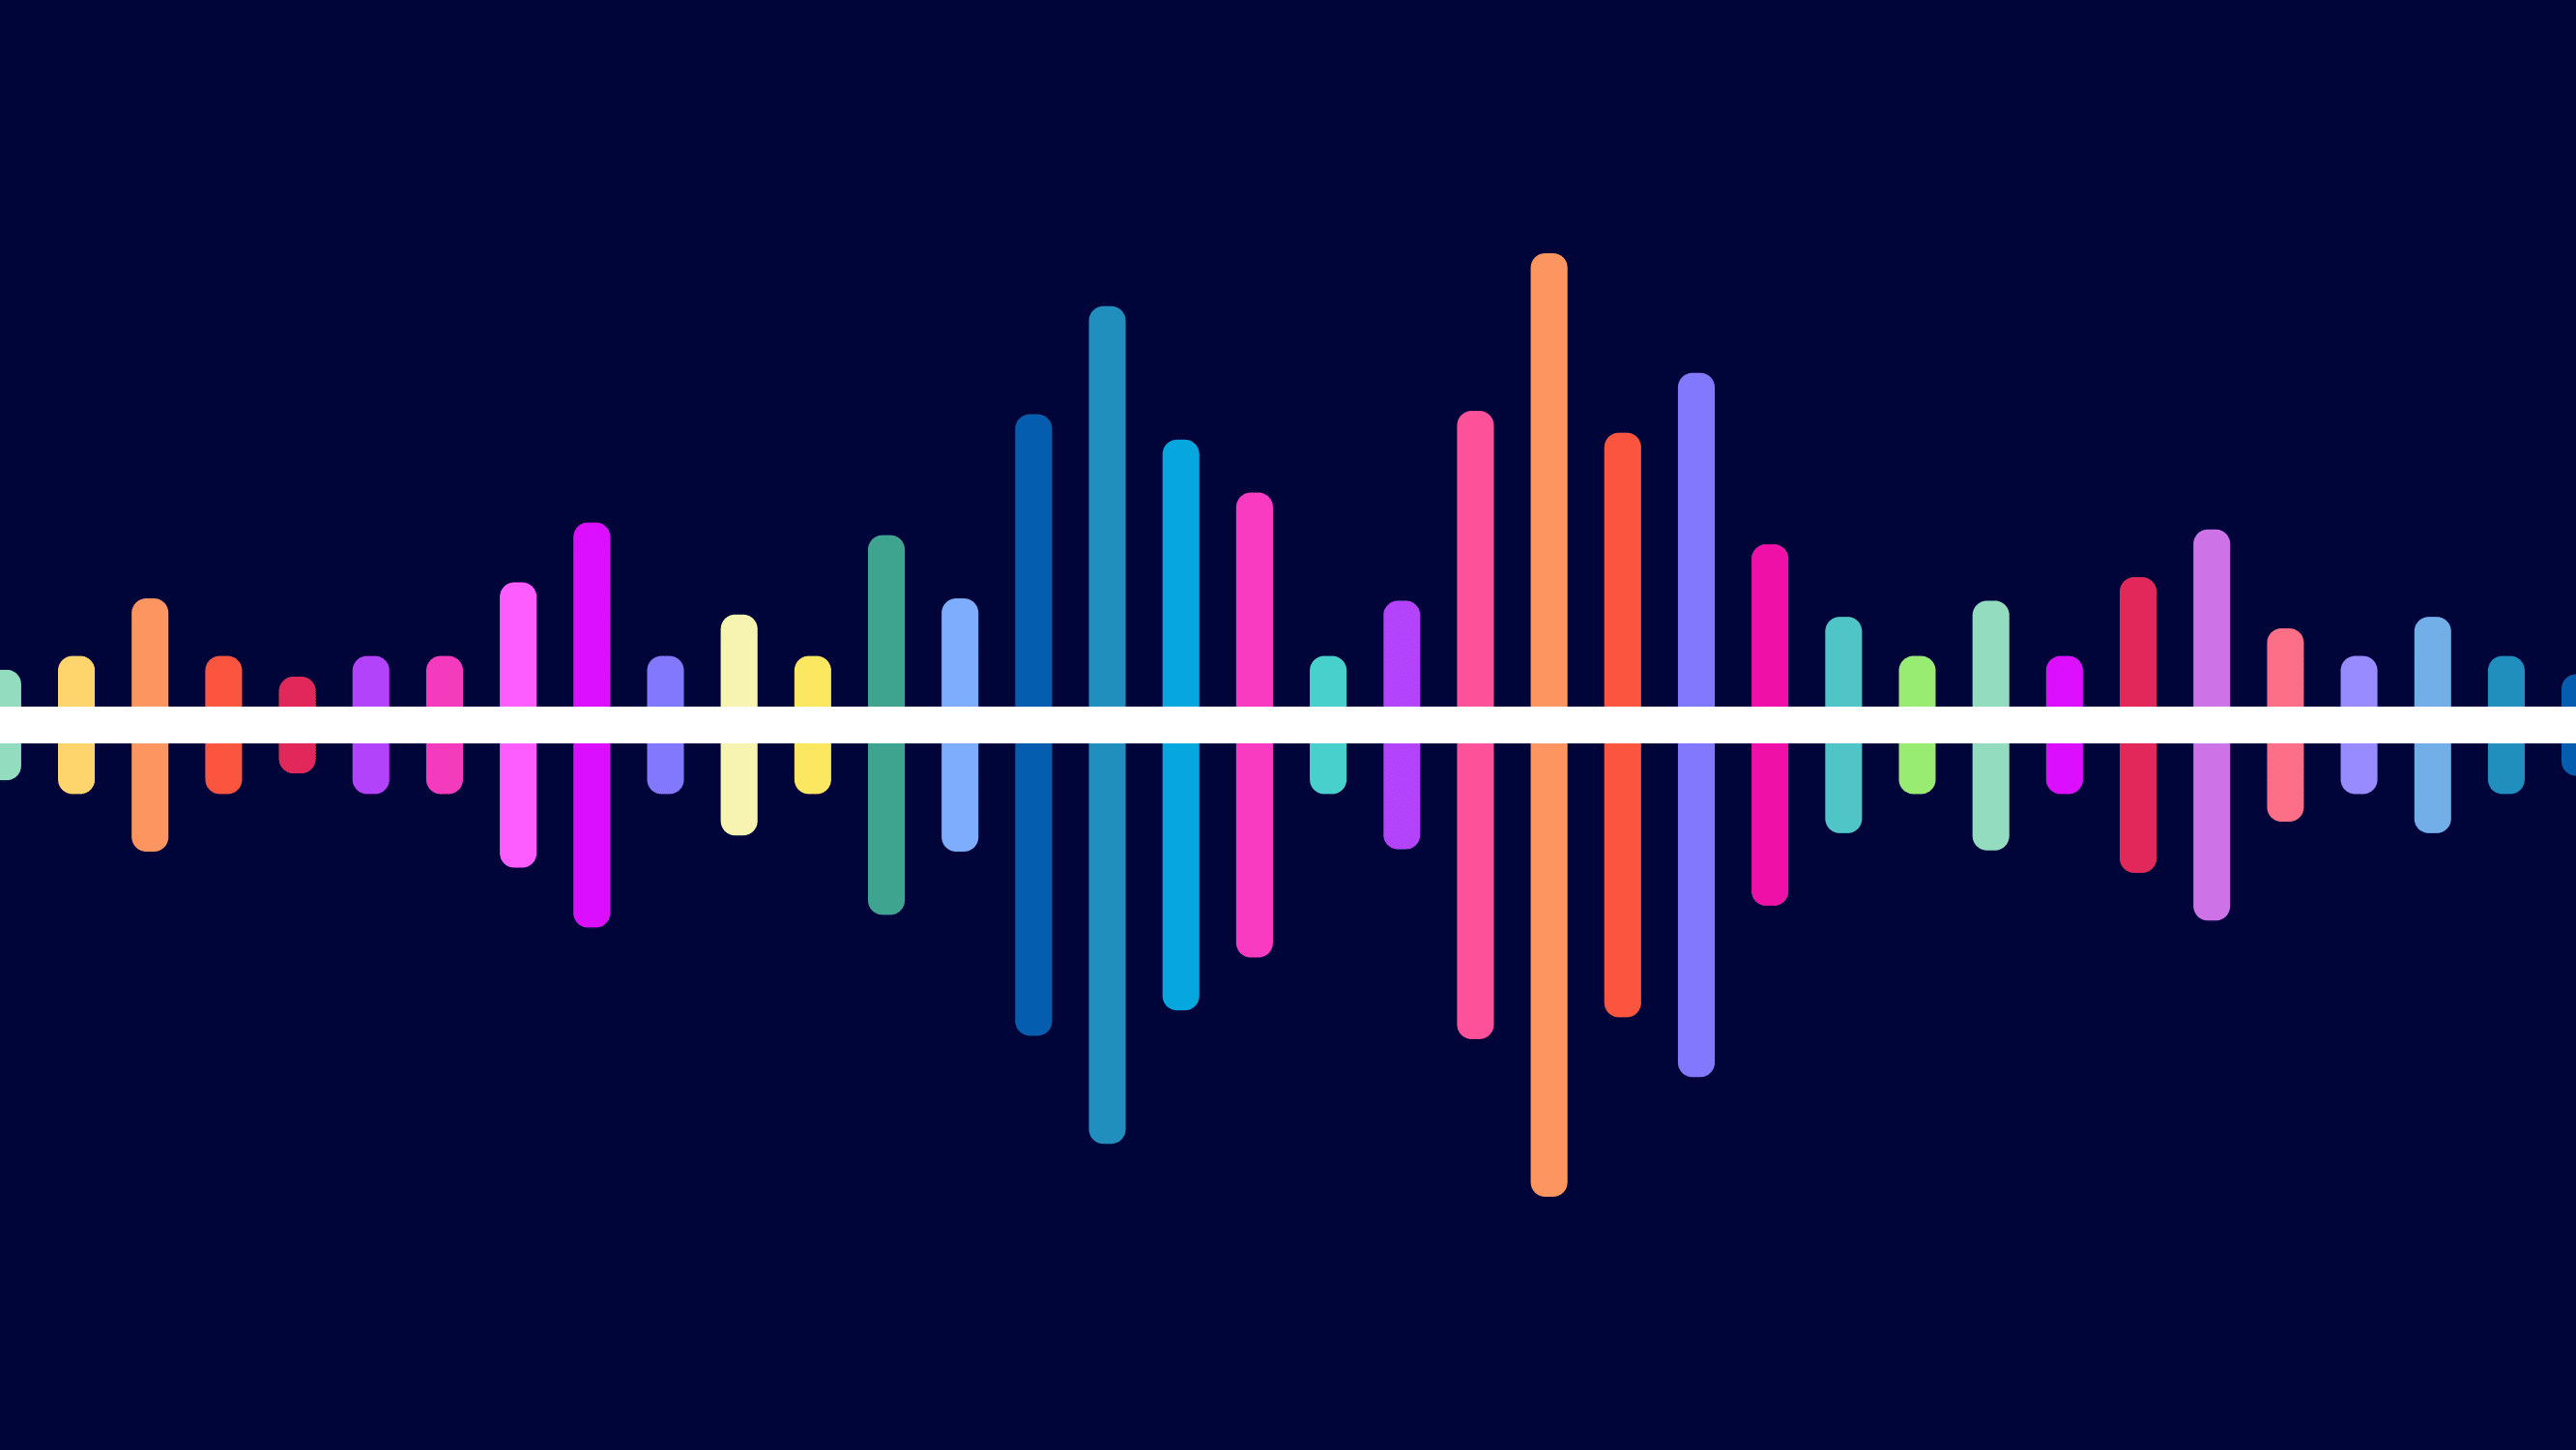 Colorful sound wave illustration, representing remote cochlear implant programming